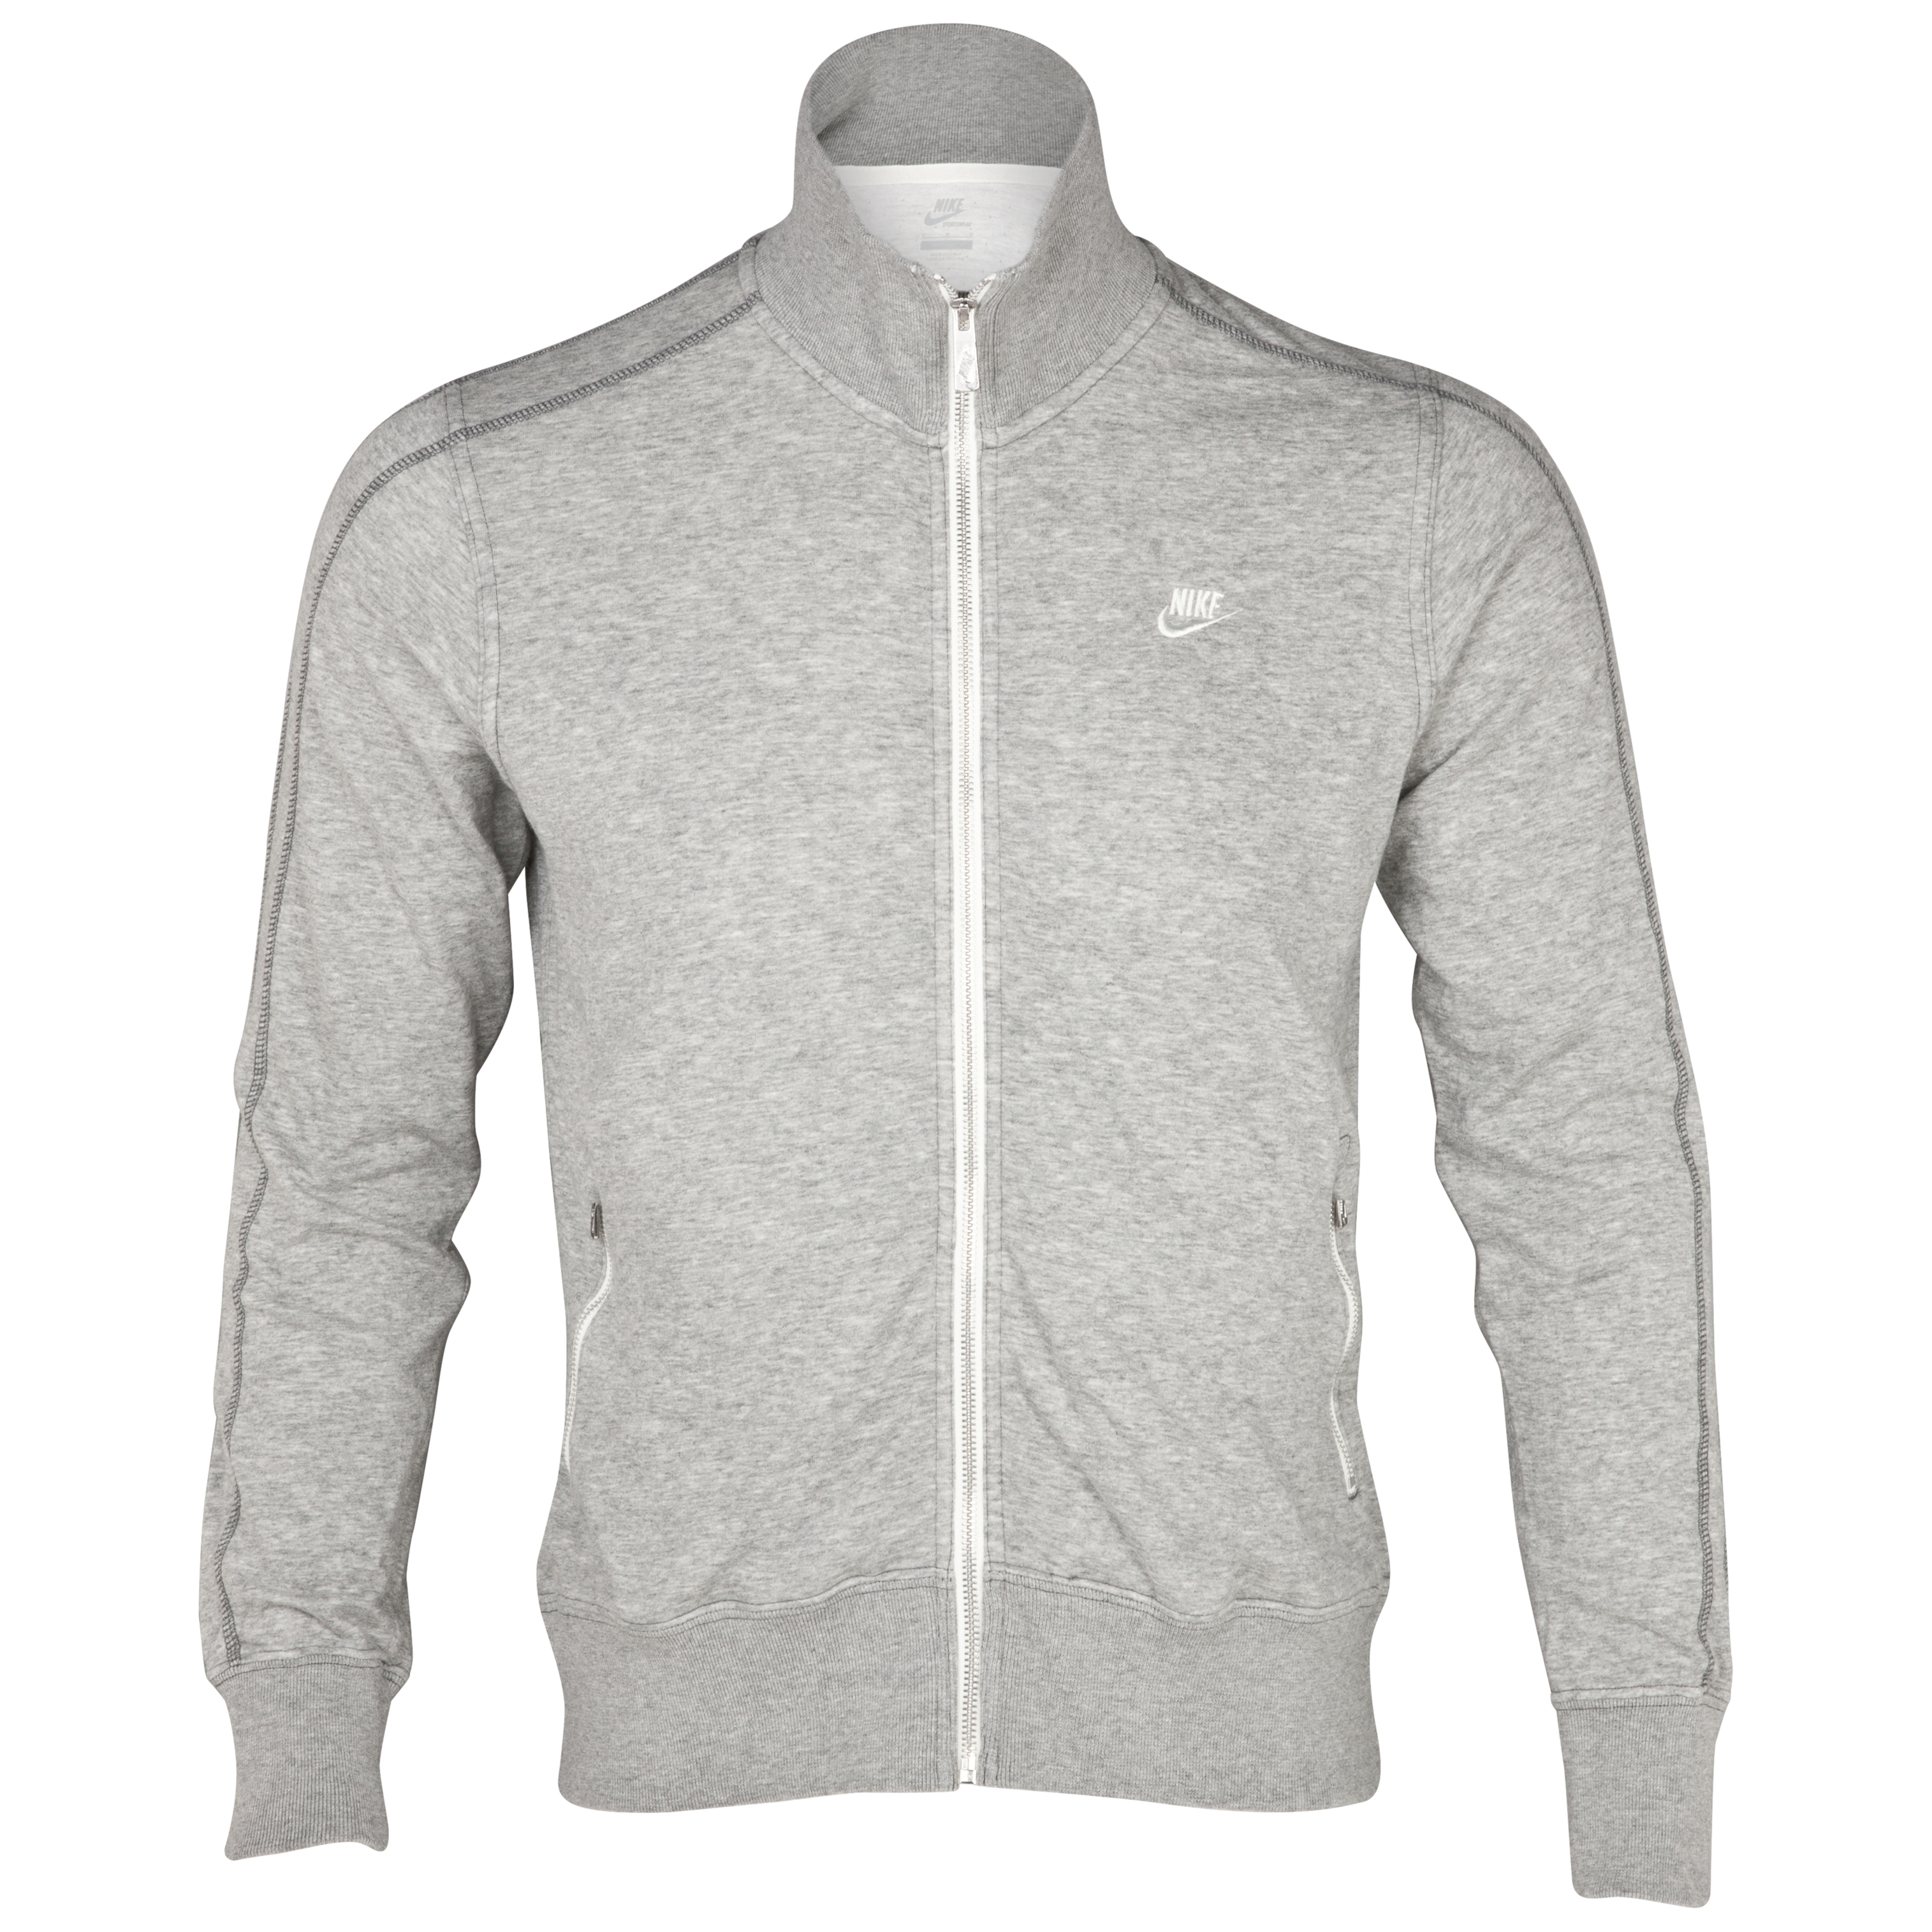 Nike N98 Jacket - Dark Grey Heather/Sail